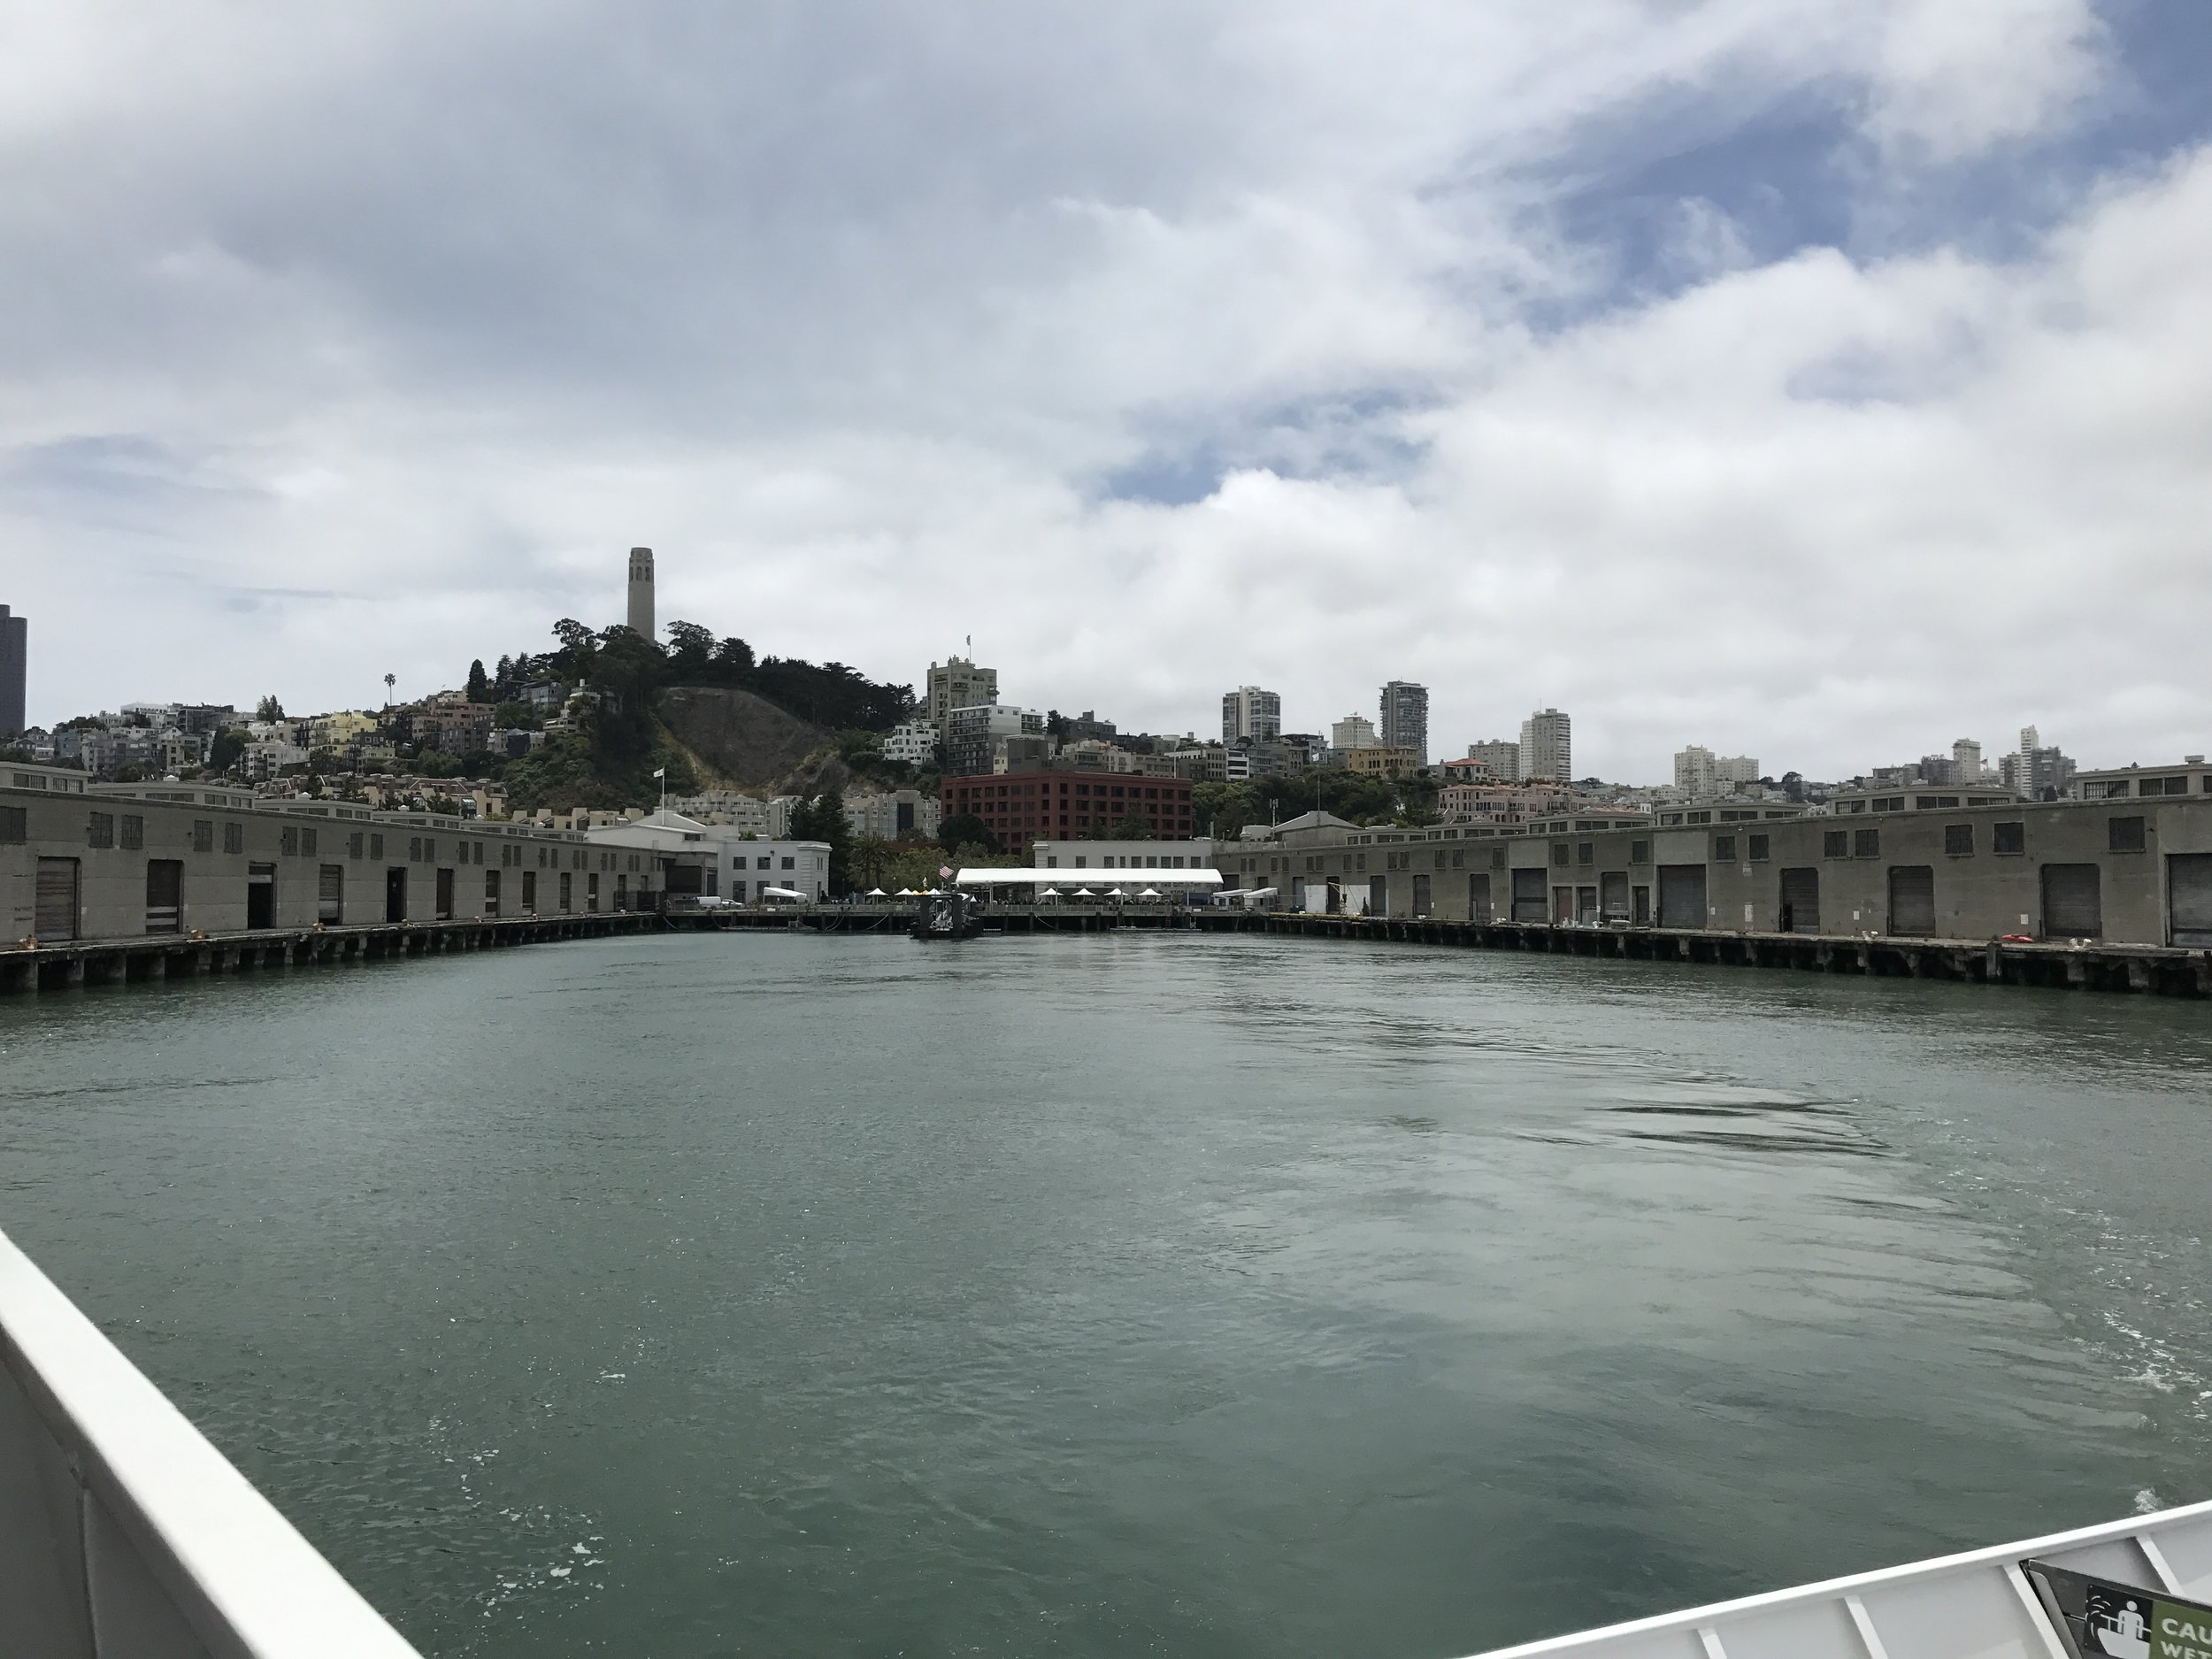 Leaving the mainland dock.